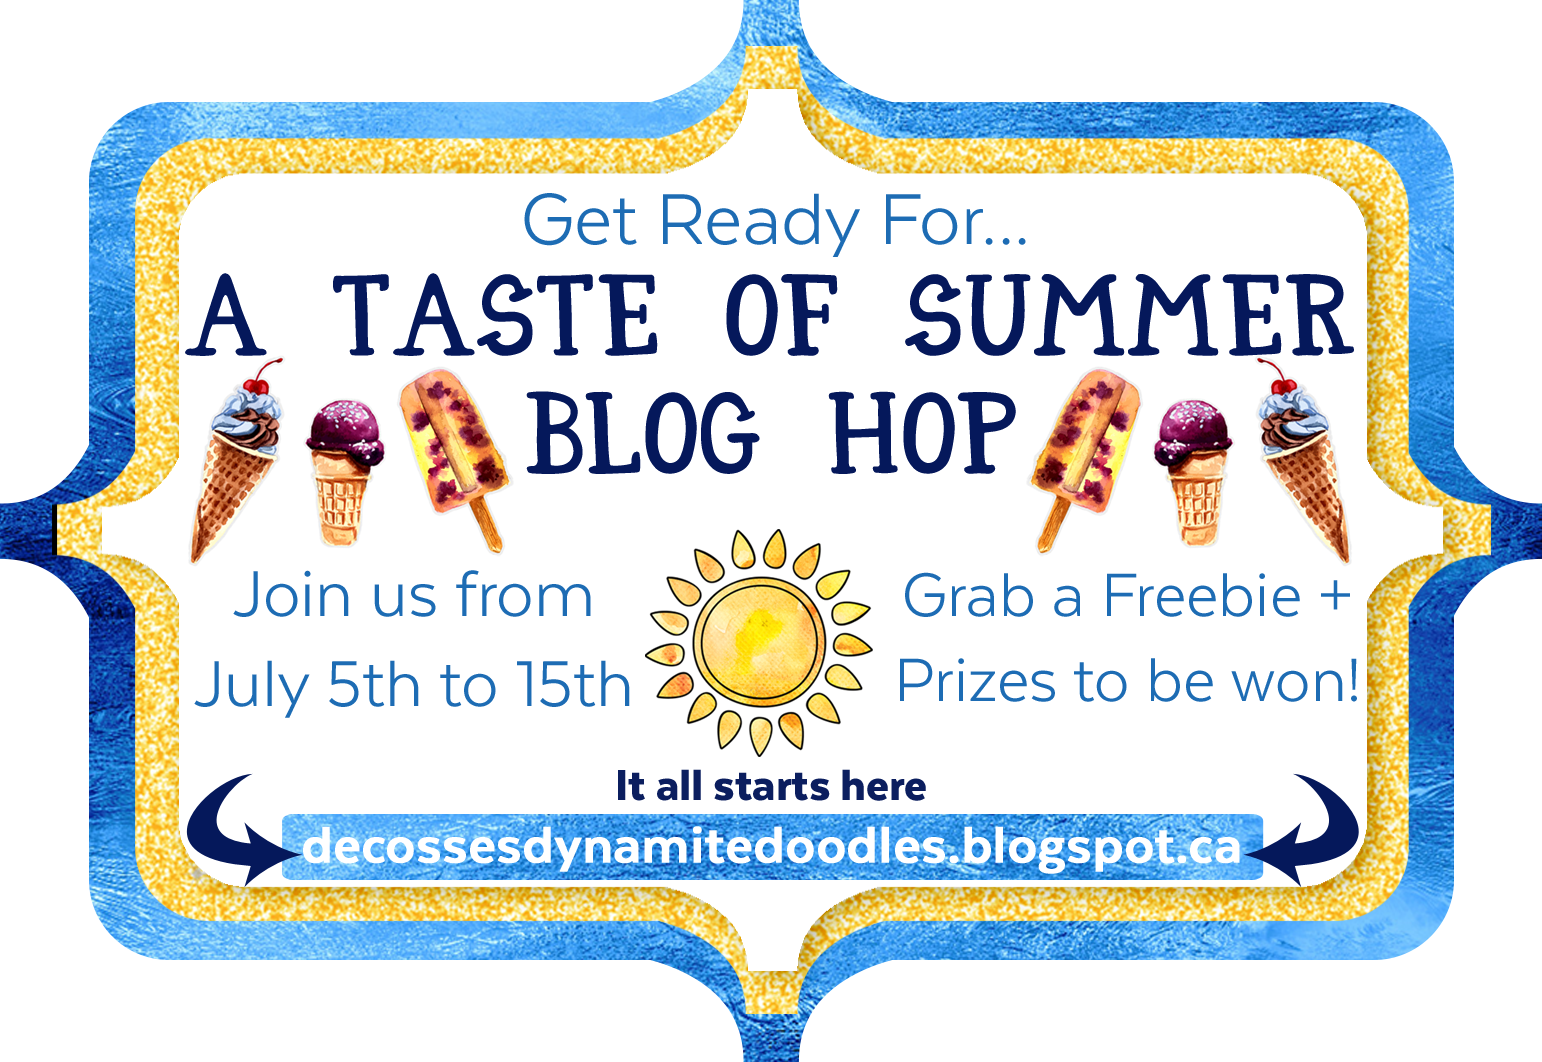 A Taste of Summer Blog Hog